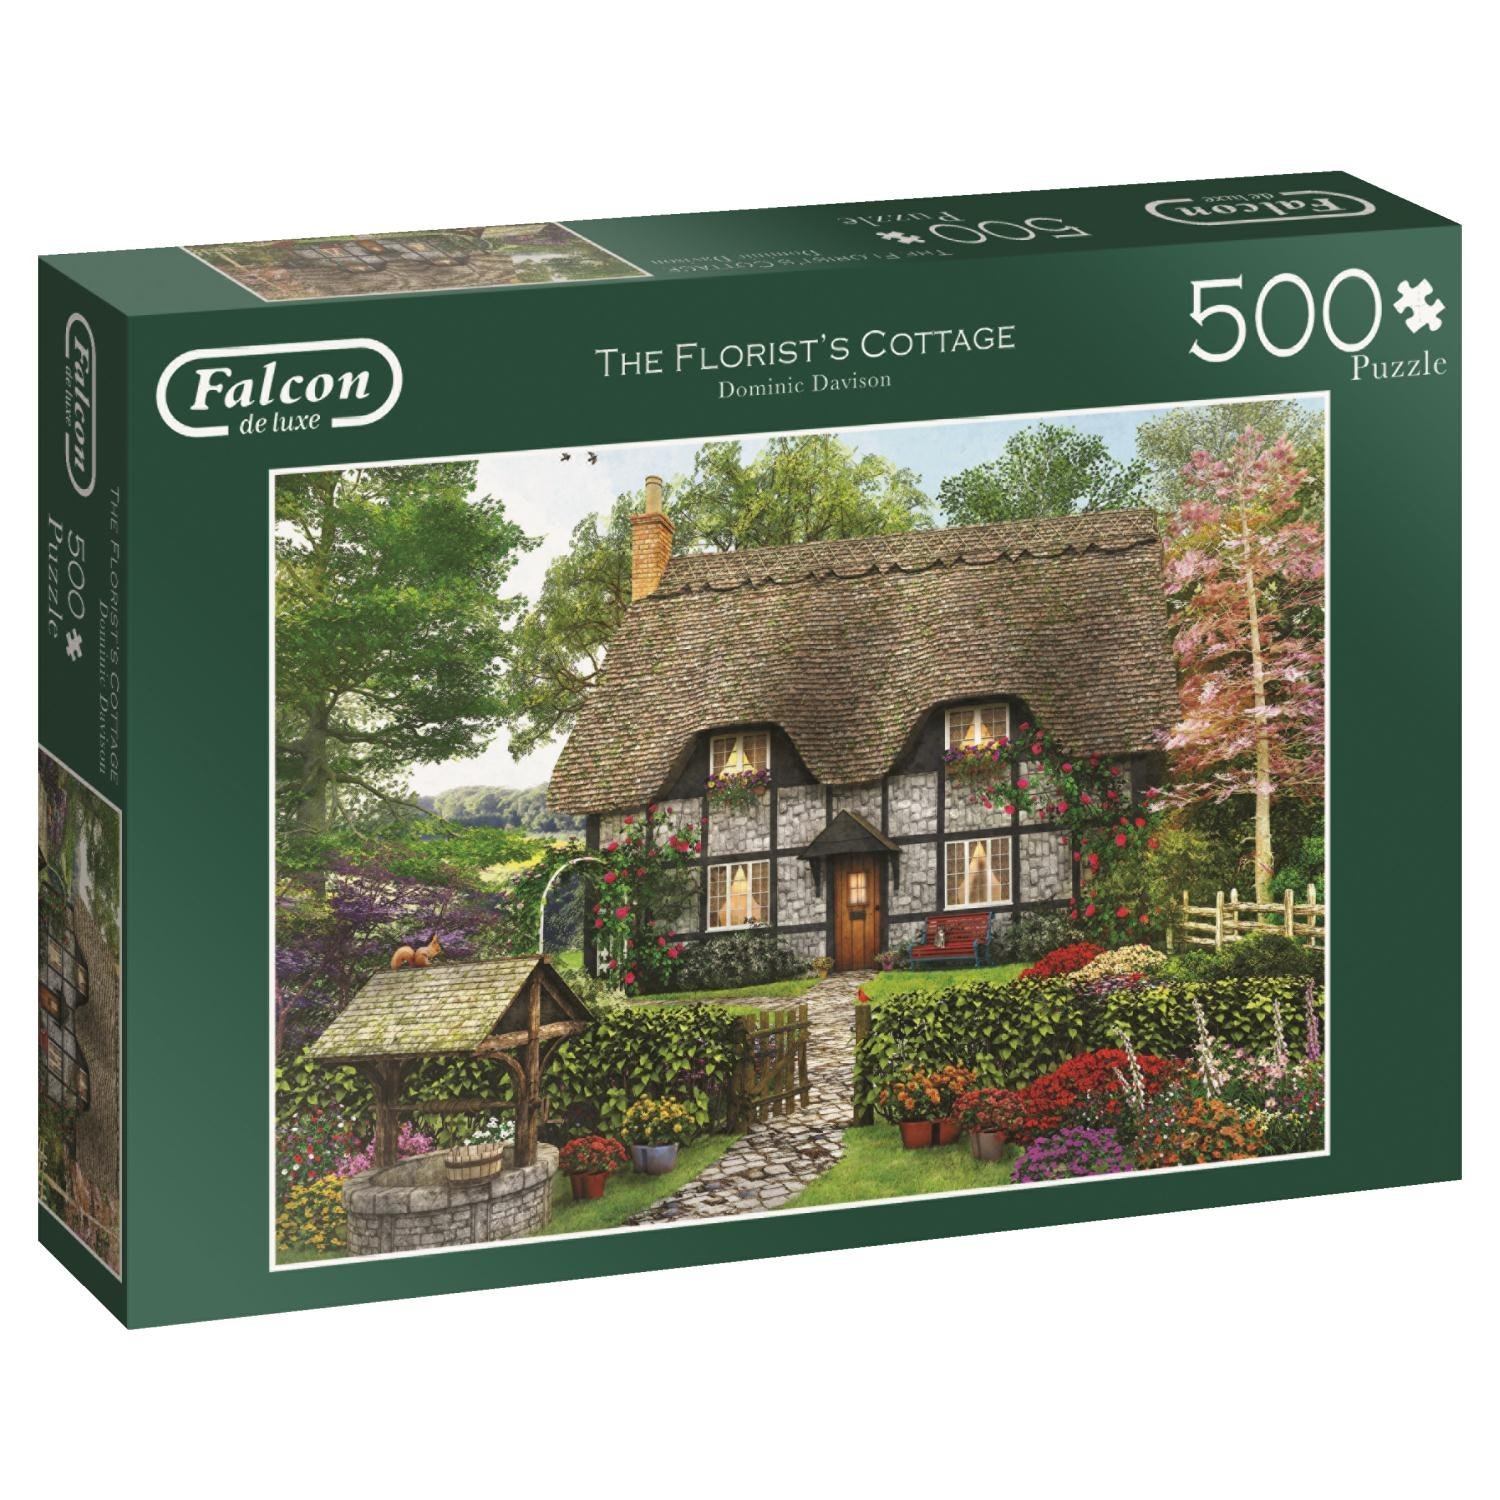 Falcon de luxe, The Florist's Cottage, Jumbo Jigsaw Puzzle 500pc